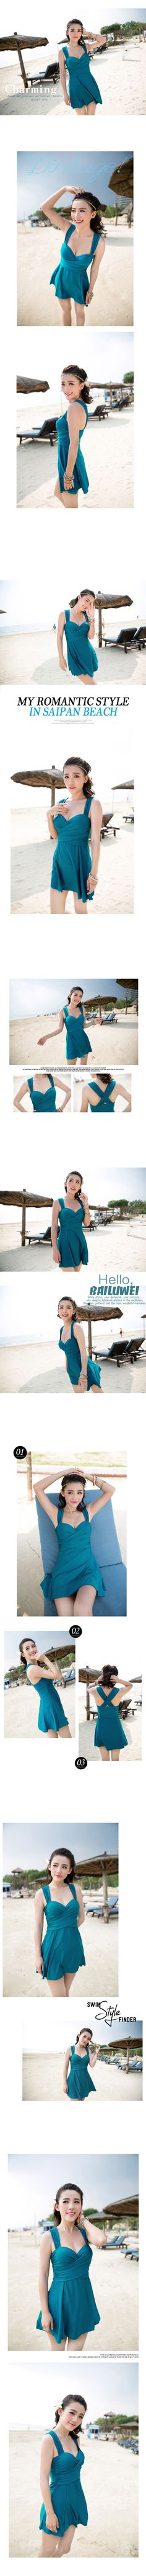 2015 Plus Size M 5XL Women One piece Swimwears Strap Underwired Pad Swimdress with Attached Bottom Cover up Dress-inOne Pieces from Women's Clothing & Accessories on Aliexpress.com | Alibaba Group One Piece For Women, Swim Dress, Swimsuits, Swimwear, Clothing Accessories, Women's Clothing, Cover Up, Plus Size, Clothes For Women